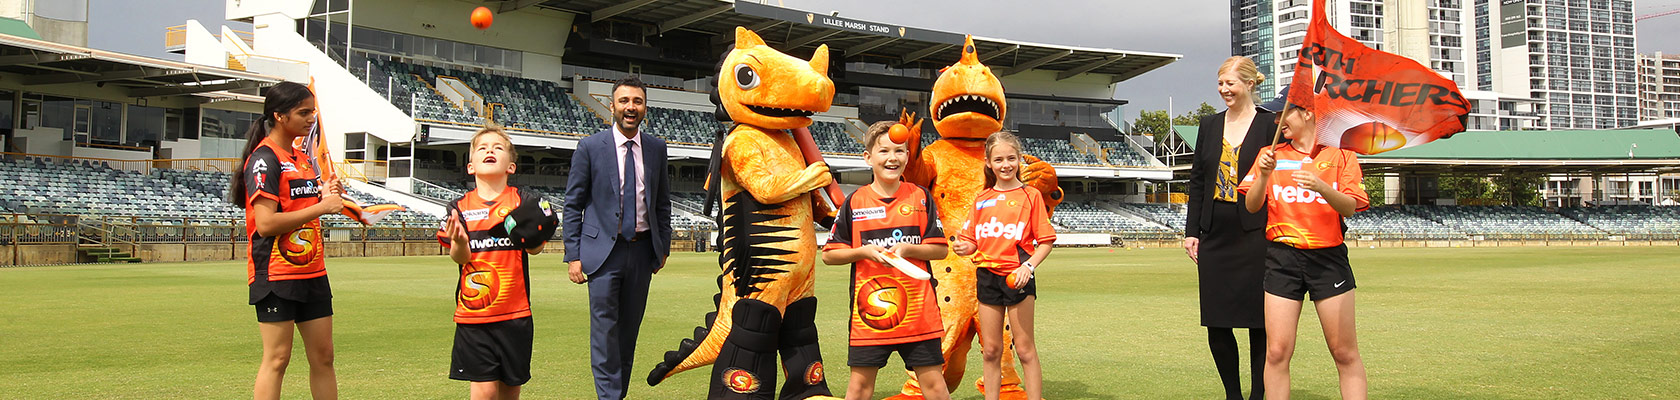 Peet - proud community partner of the Perth Scorchers